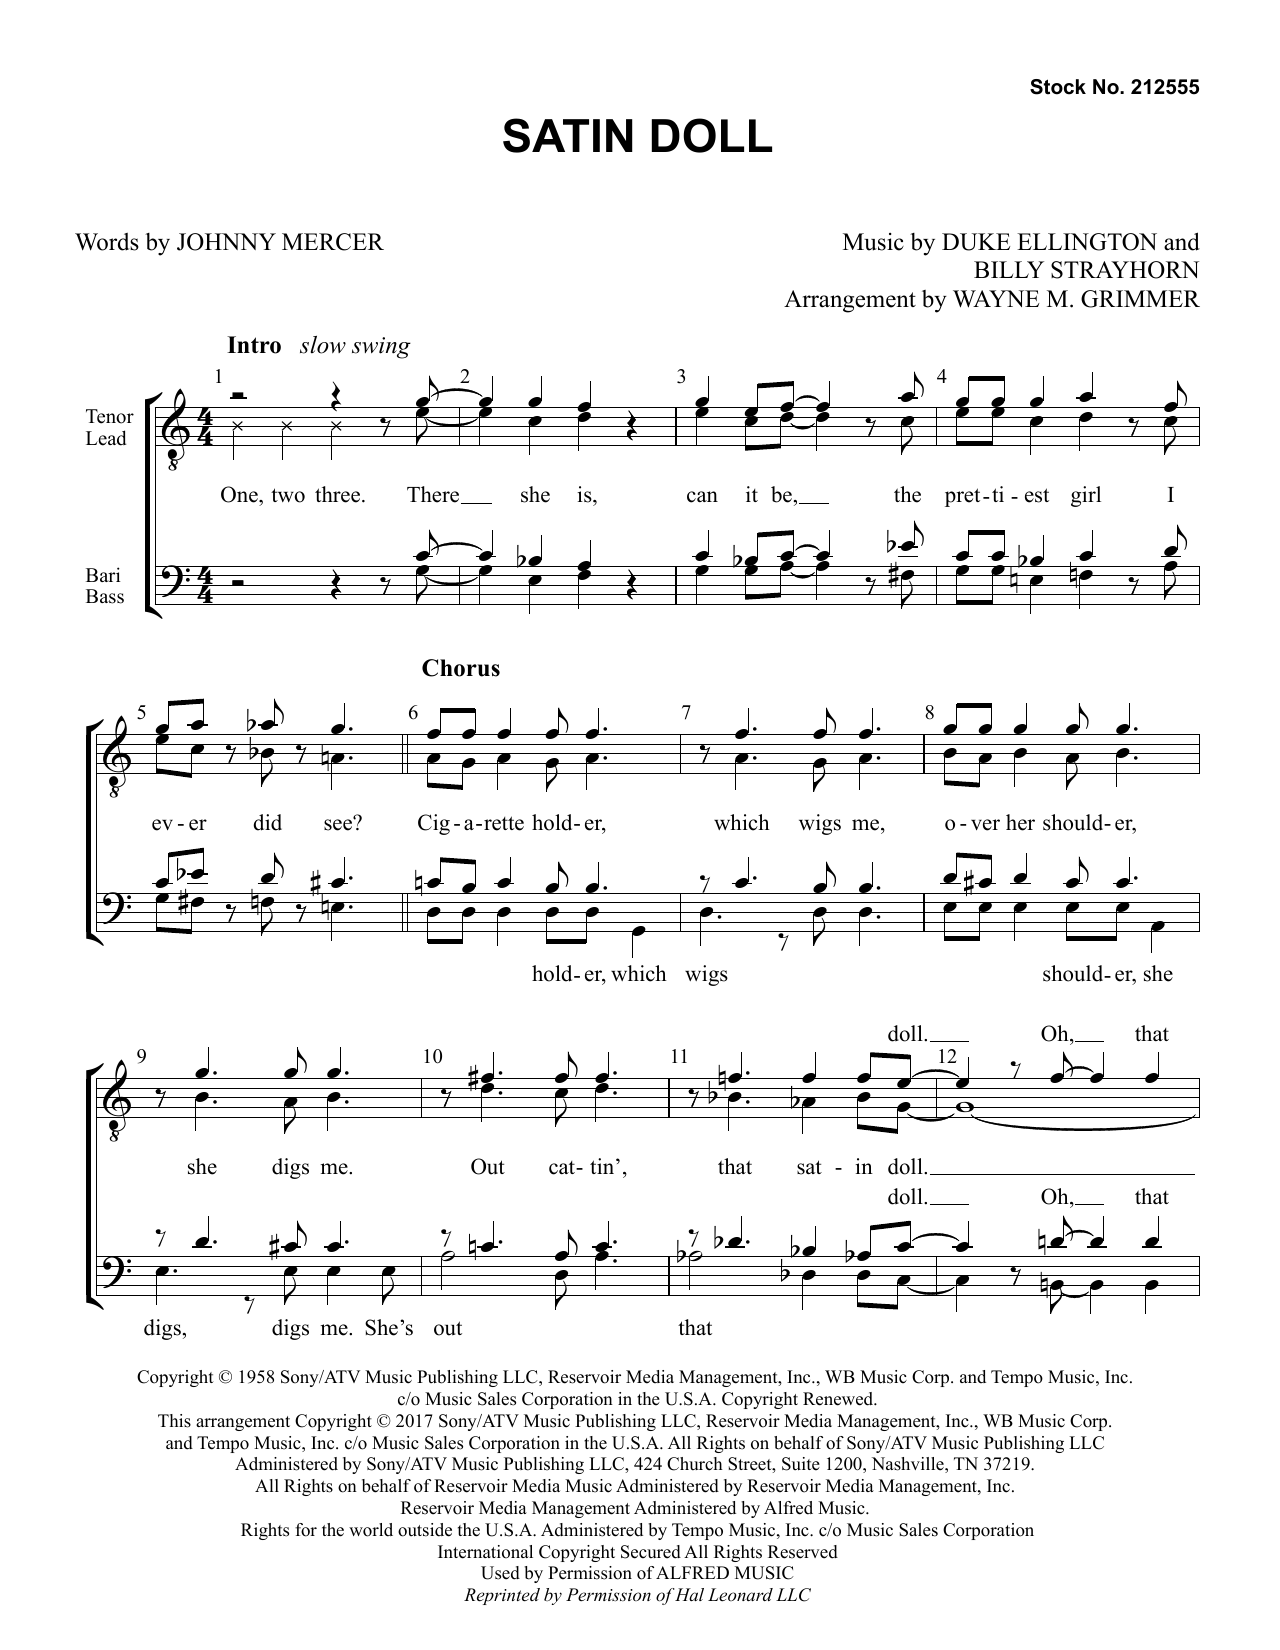 Satin Doll (arr. Wayne Grimmer) Partition Digitale